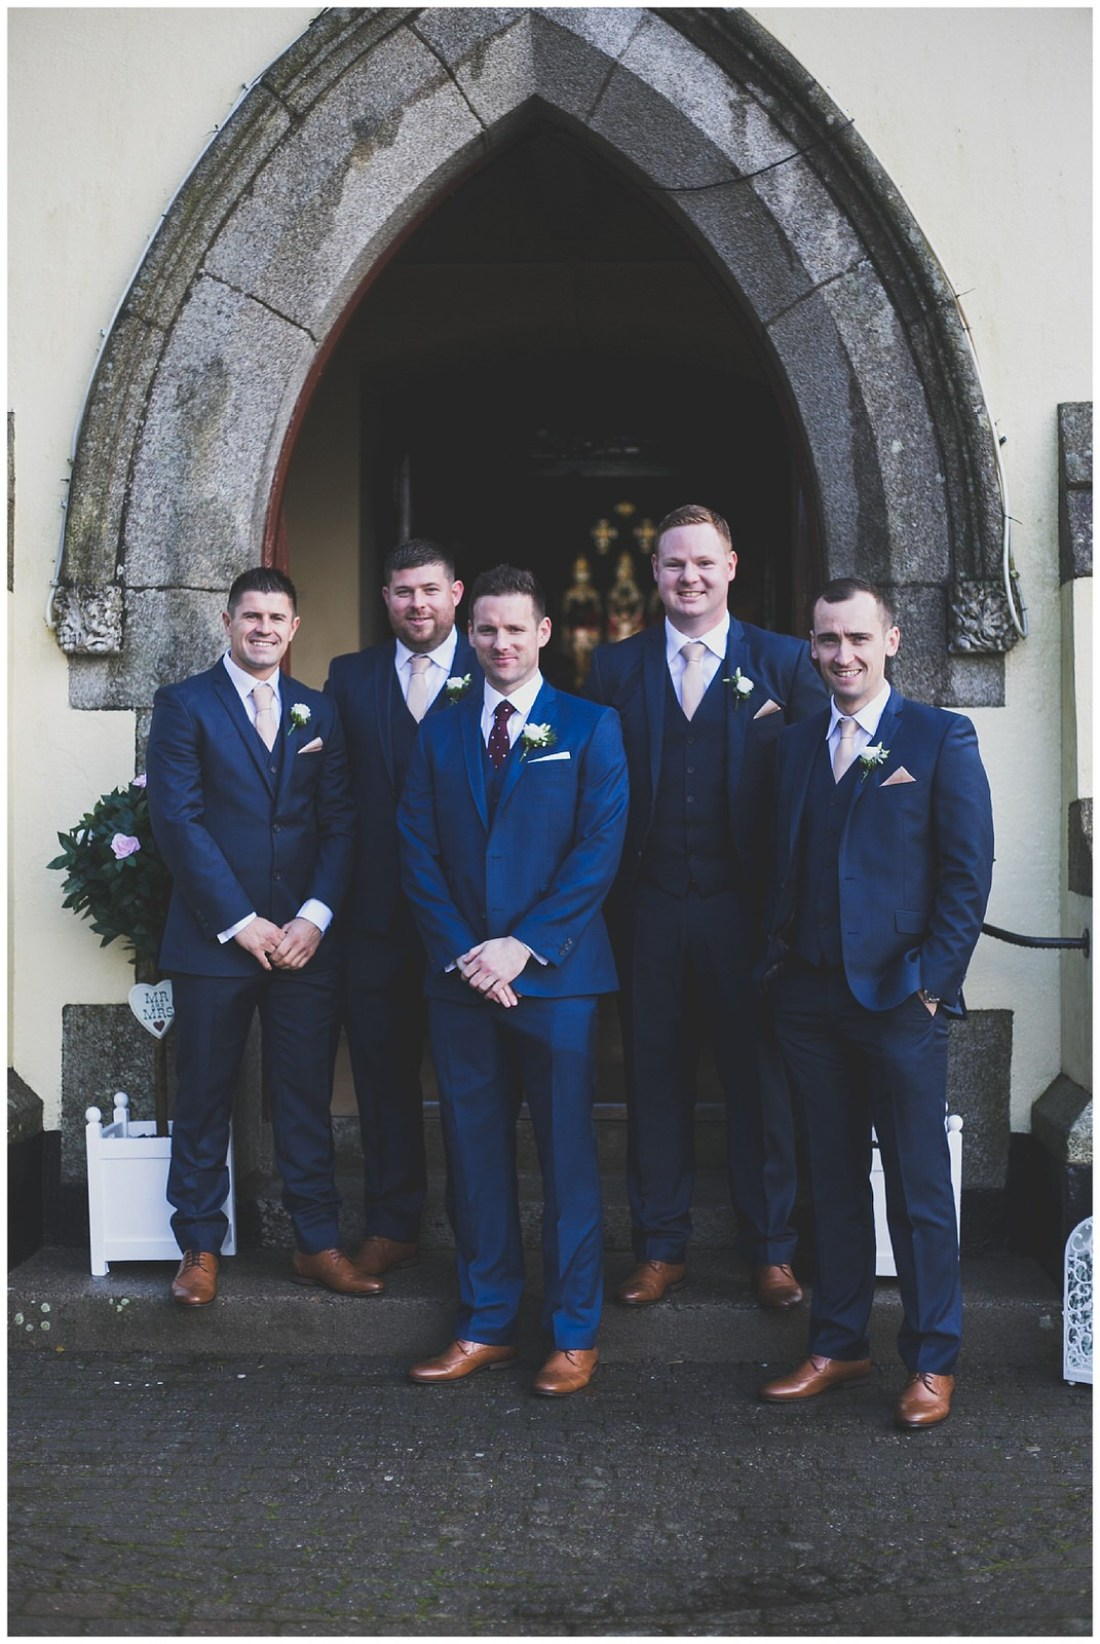 Groom and his groomsmen before the wedding ceremony